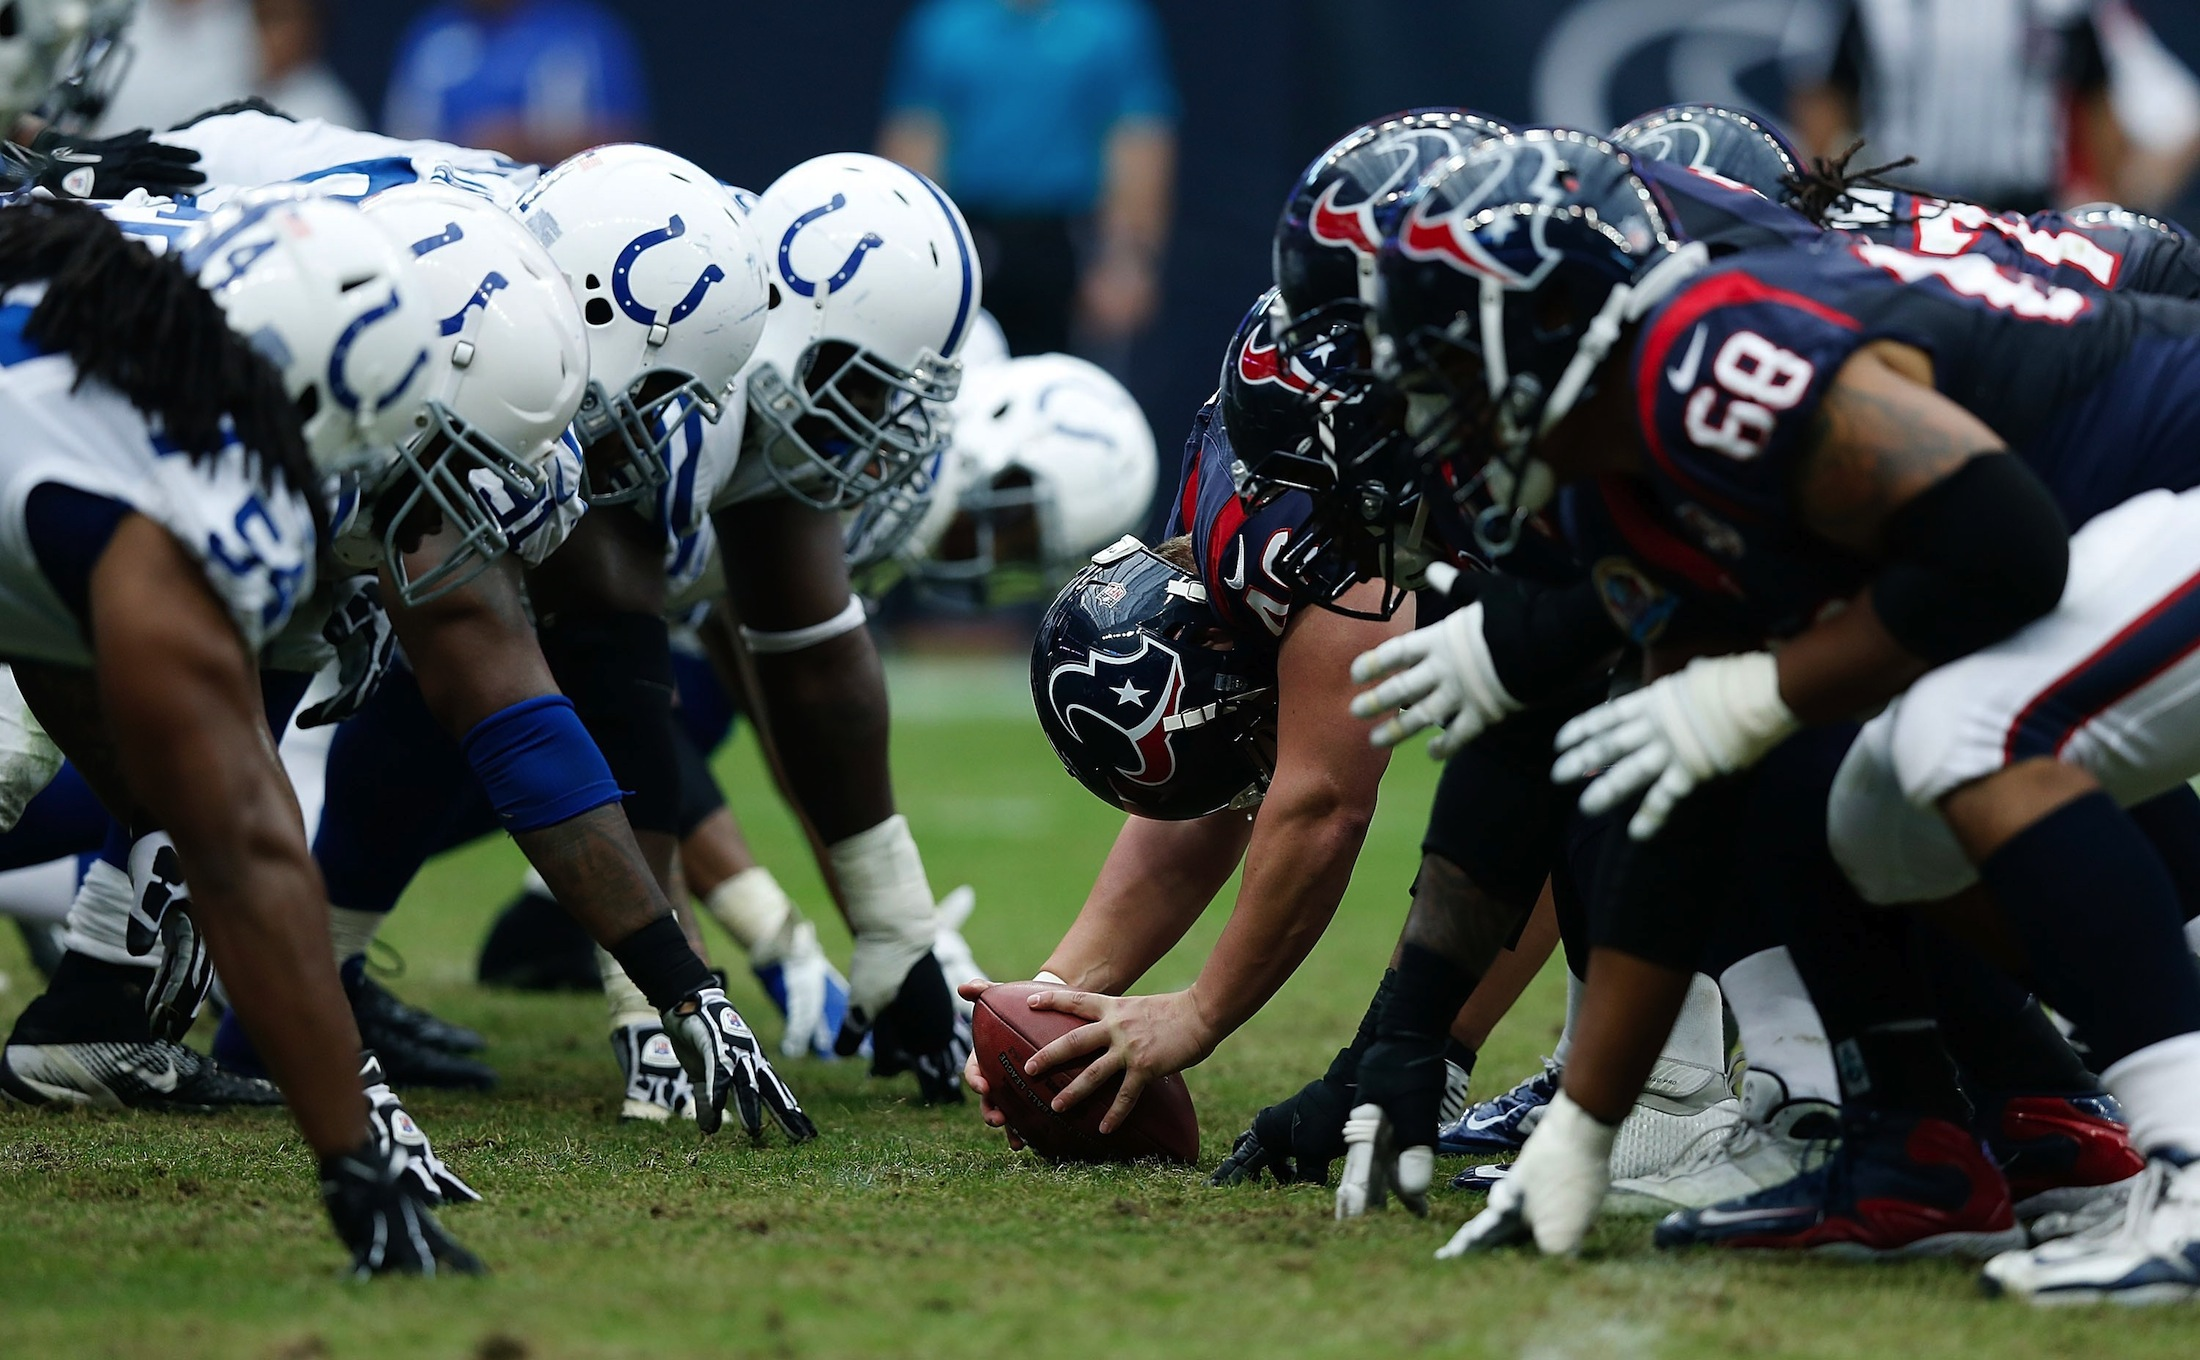 american lines sports who is winning the football